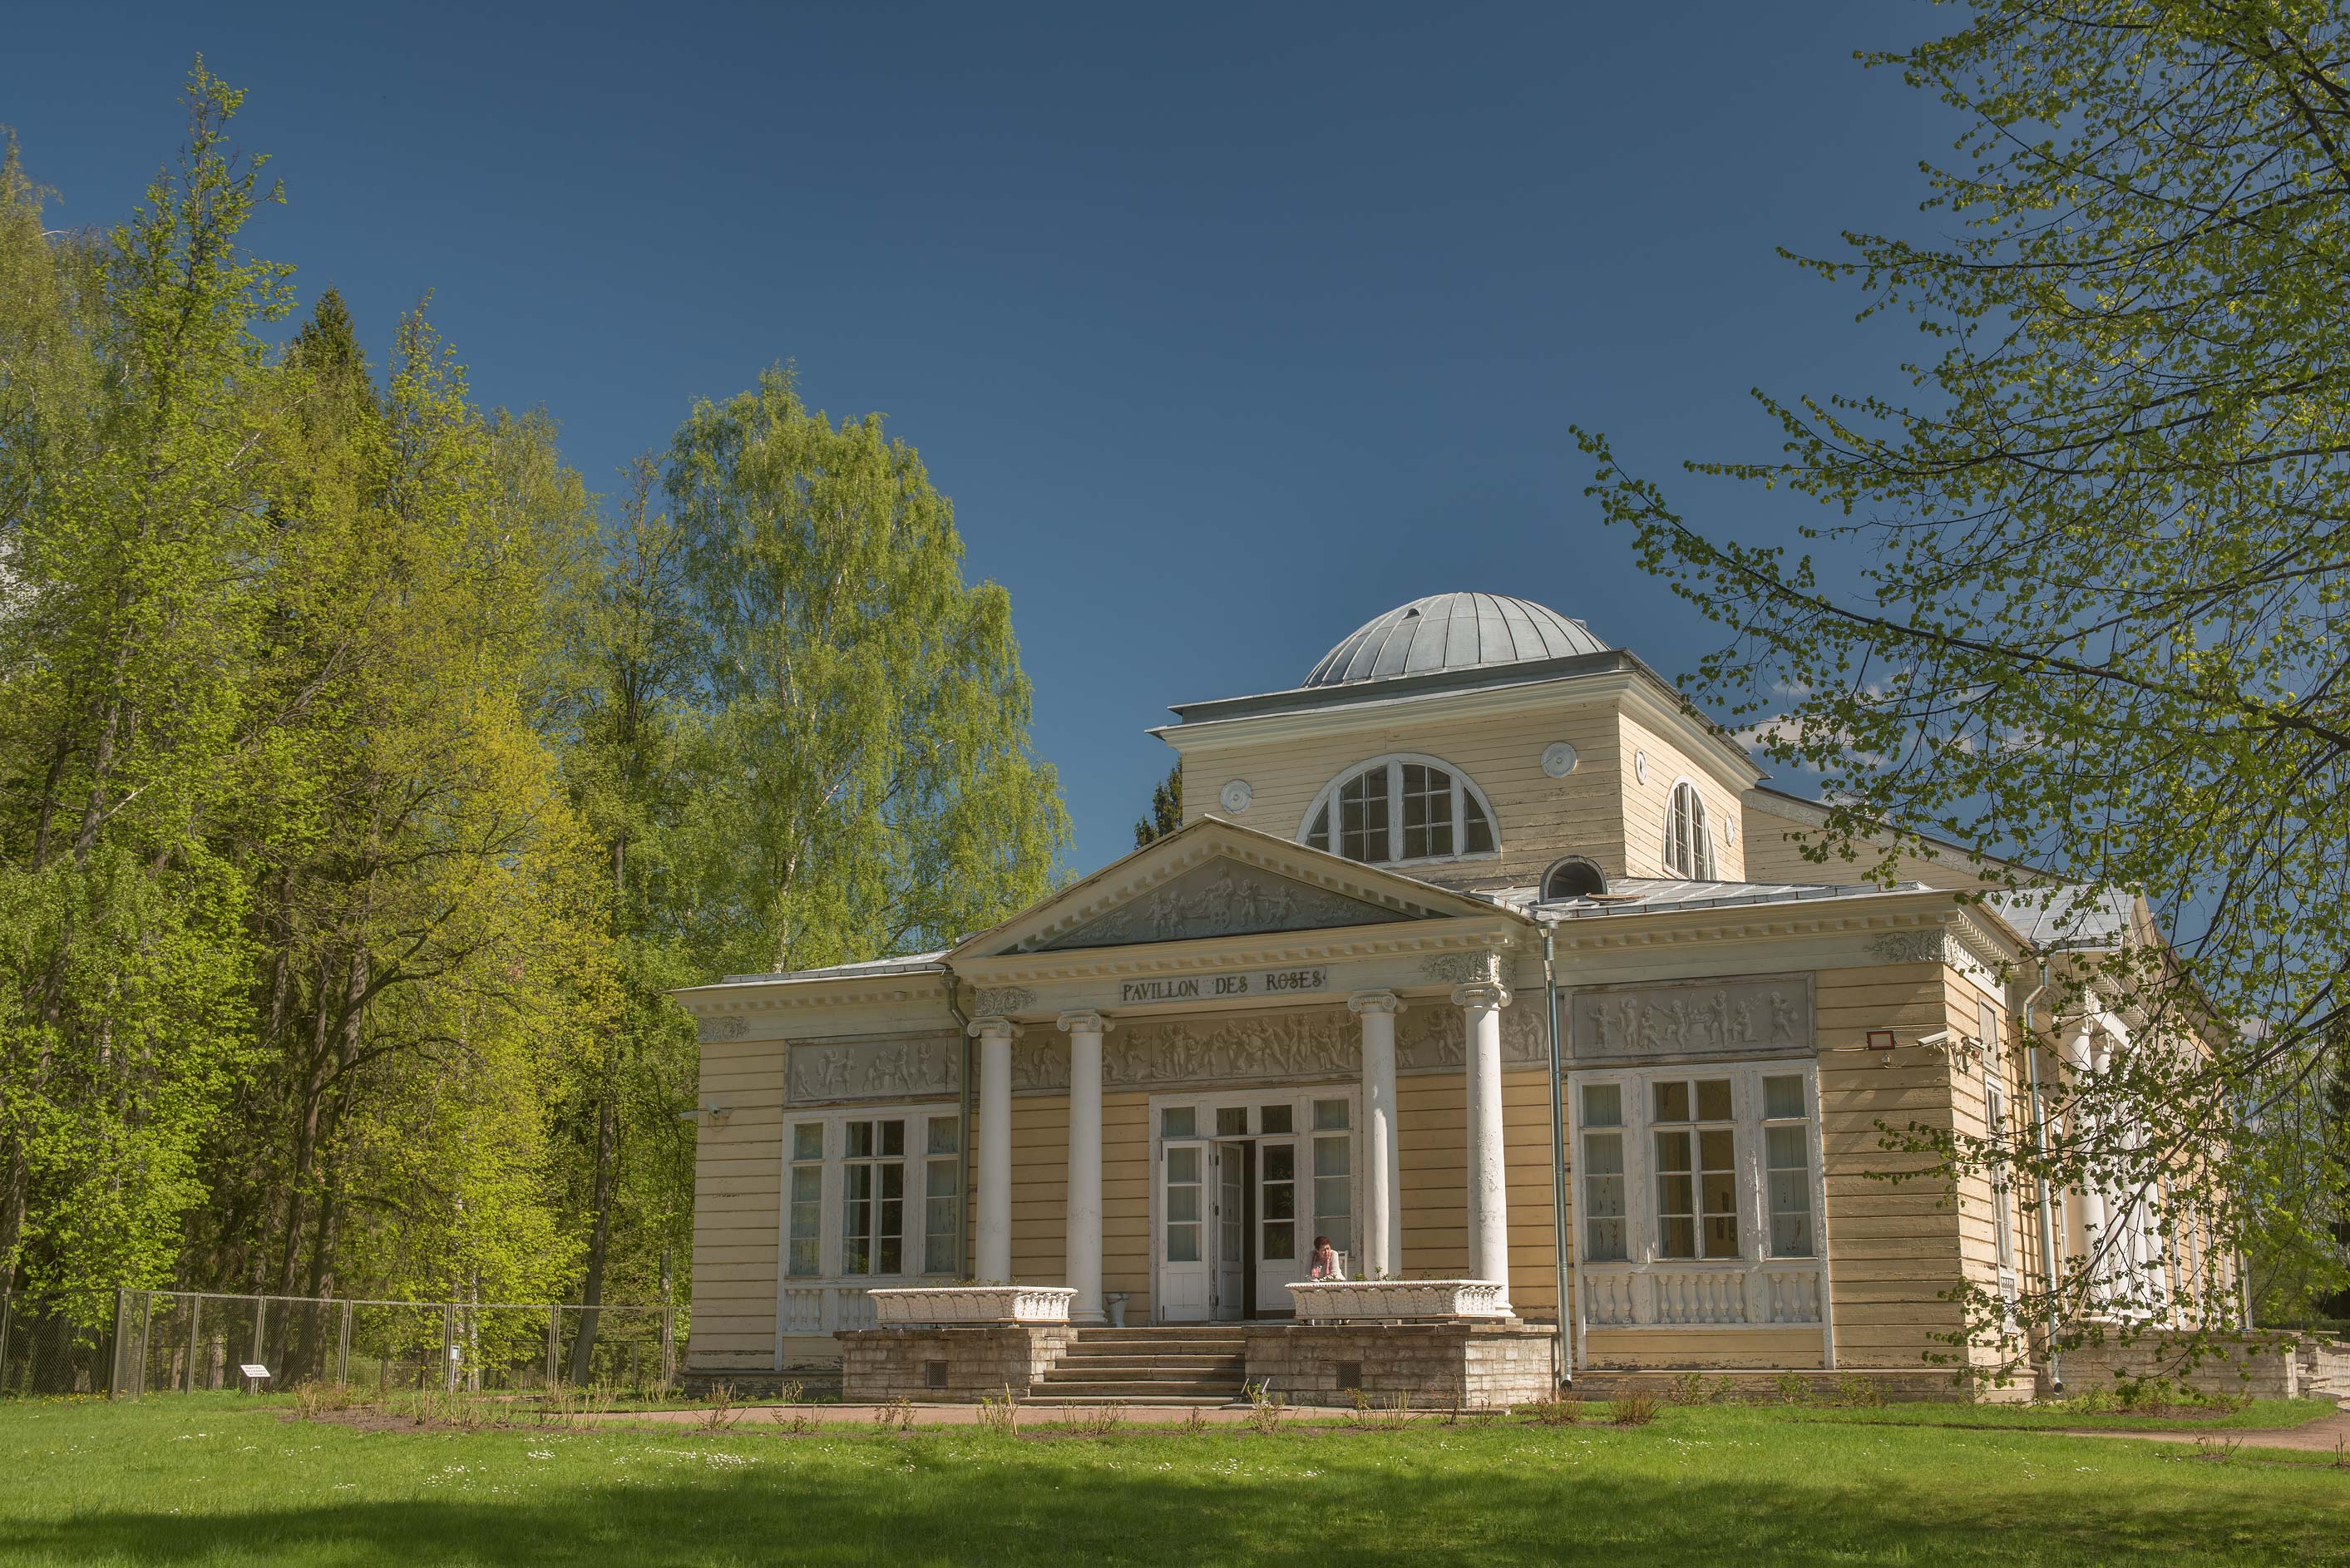 Rose Pavilion from Ninth Parade Alley in Pavlovsk...a suburb of St.Petersburg, Russia